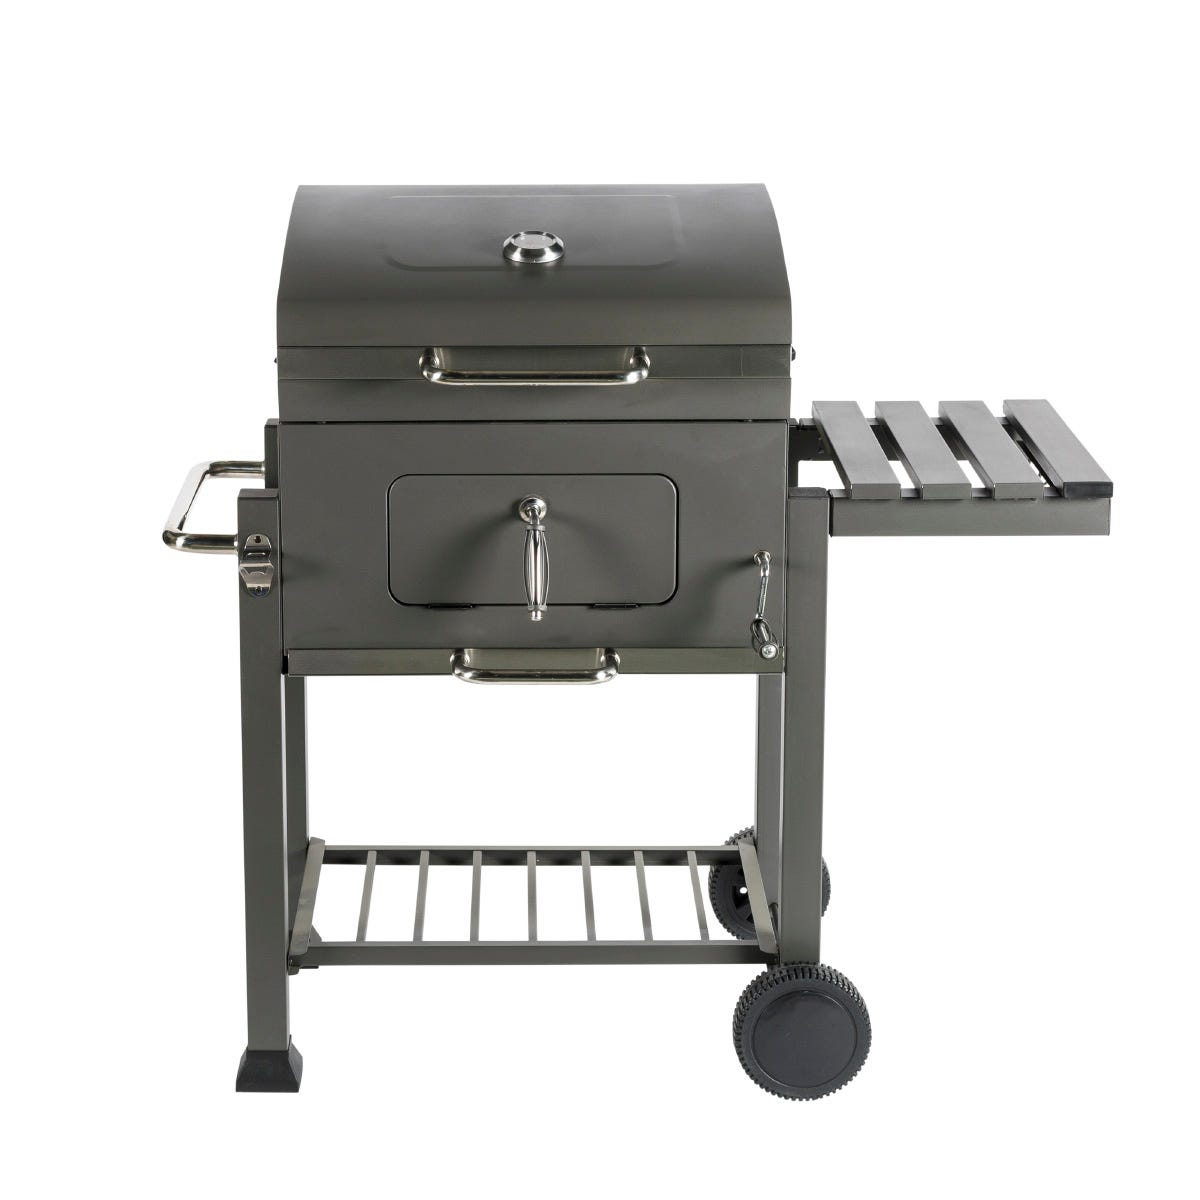 Outback Orion BBQ Charcoal - Black